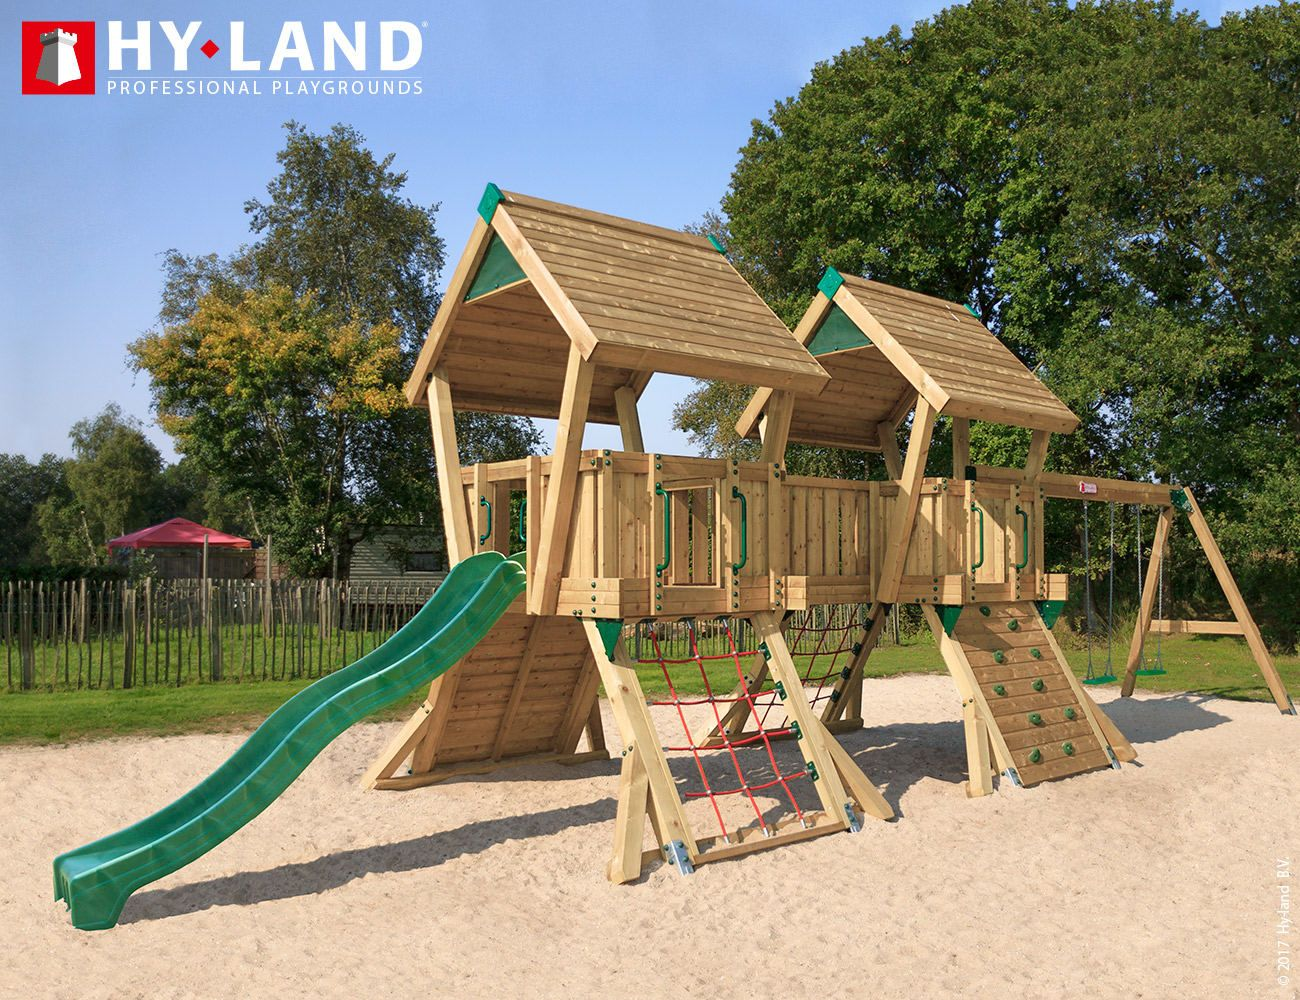 parco-giochi-project Q4s-Hy_Land-vendita-online-Mybricoshop